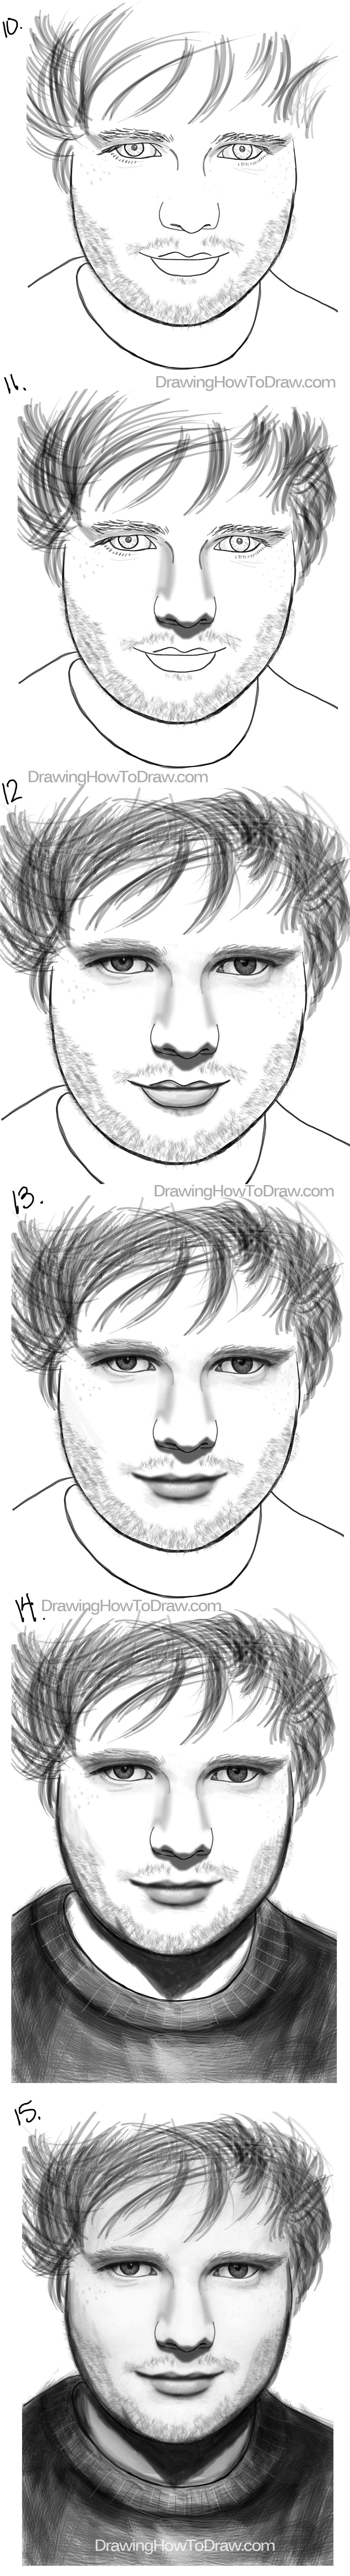 learn how to draw ed sheeran with simple steps tutorial